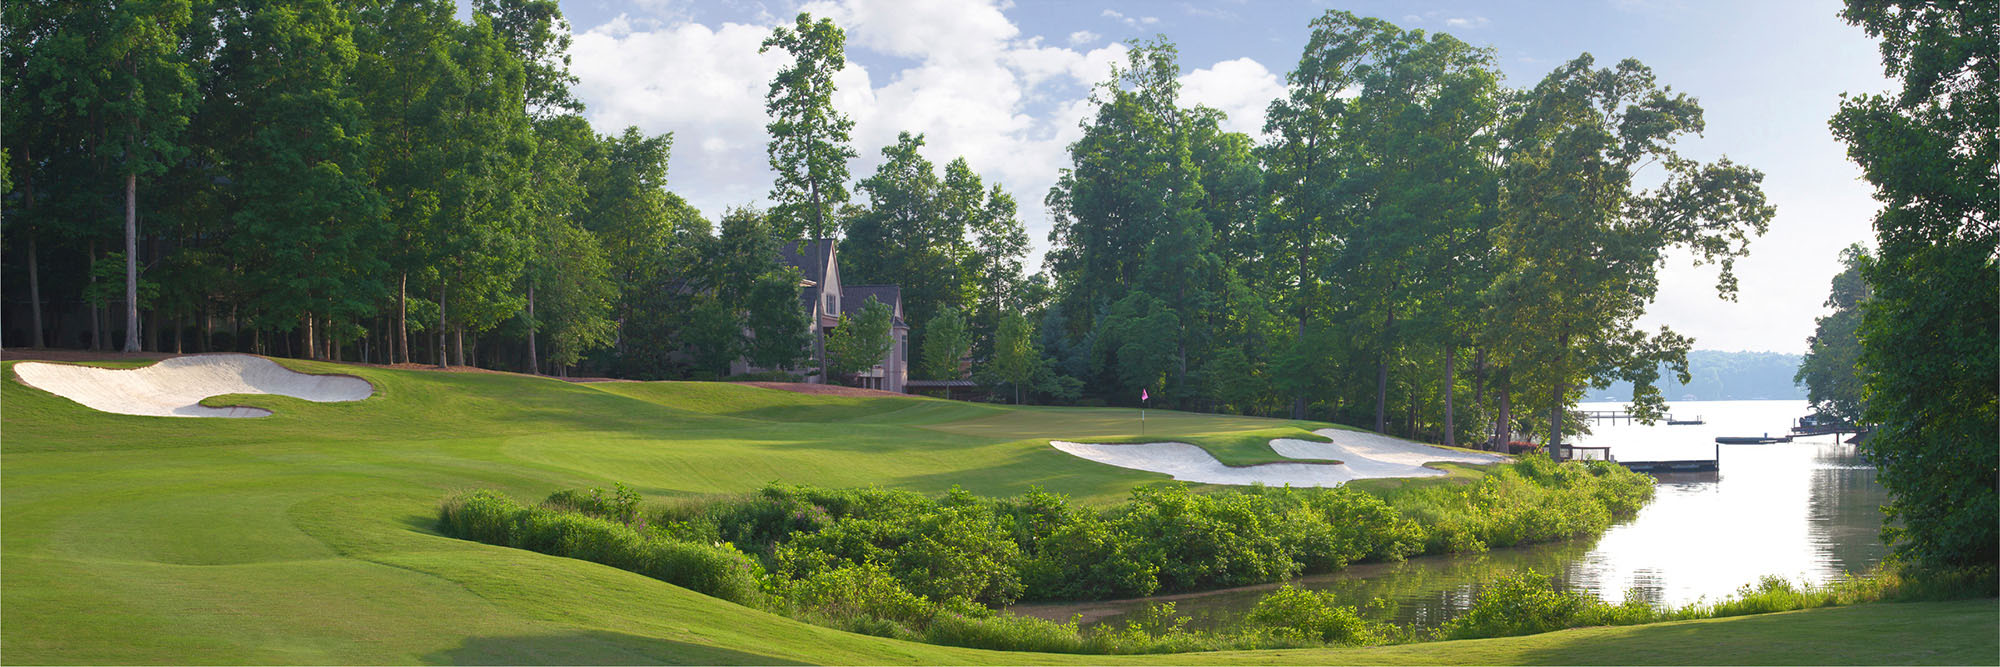 Golf Course Image - Trump National Charlotte No. 12